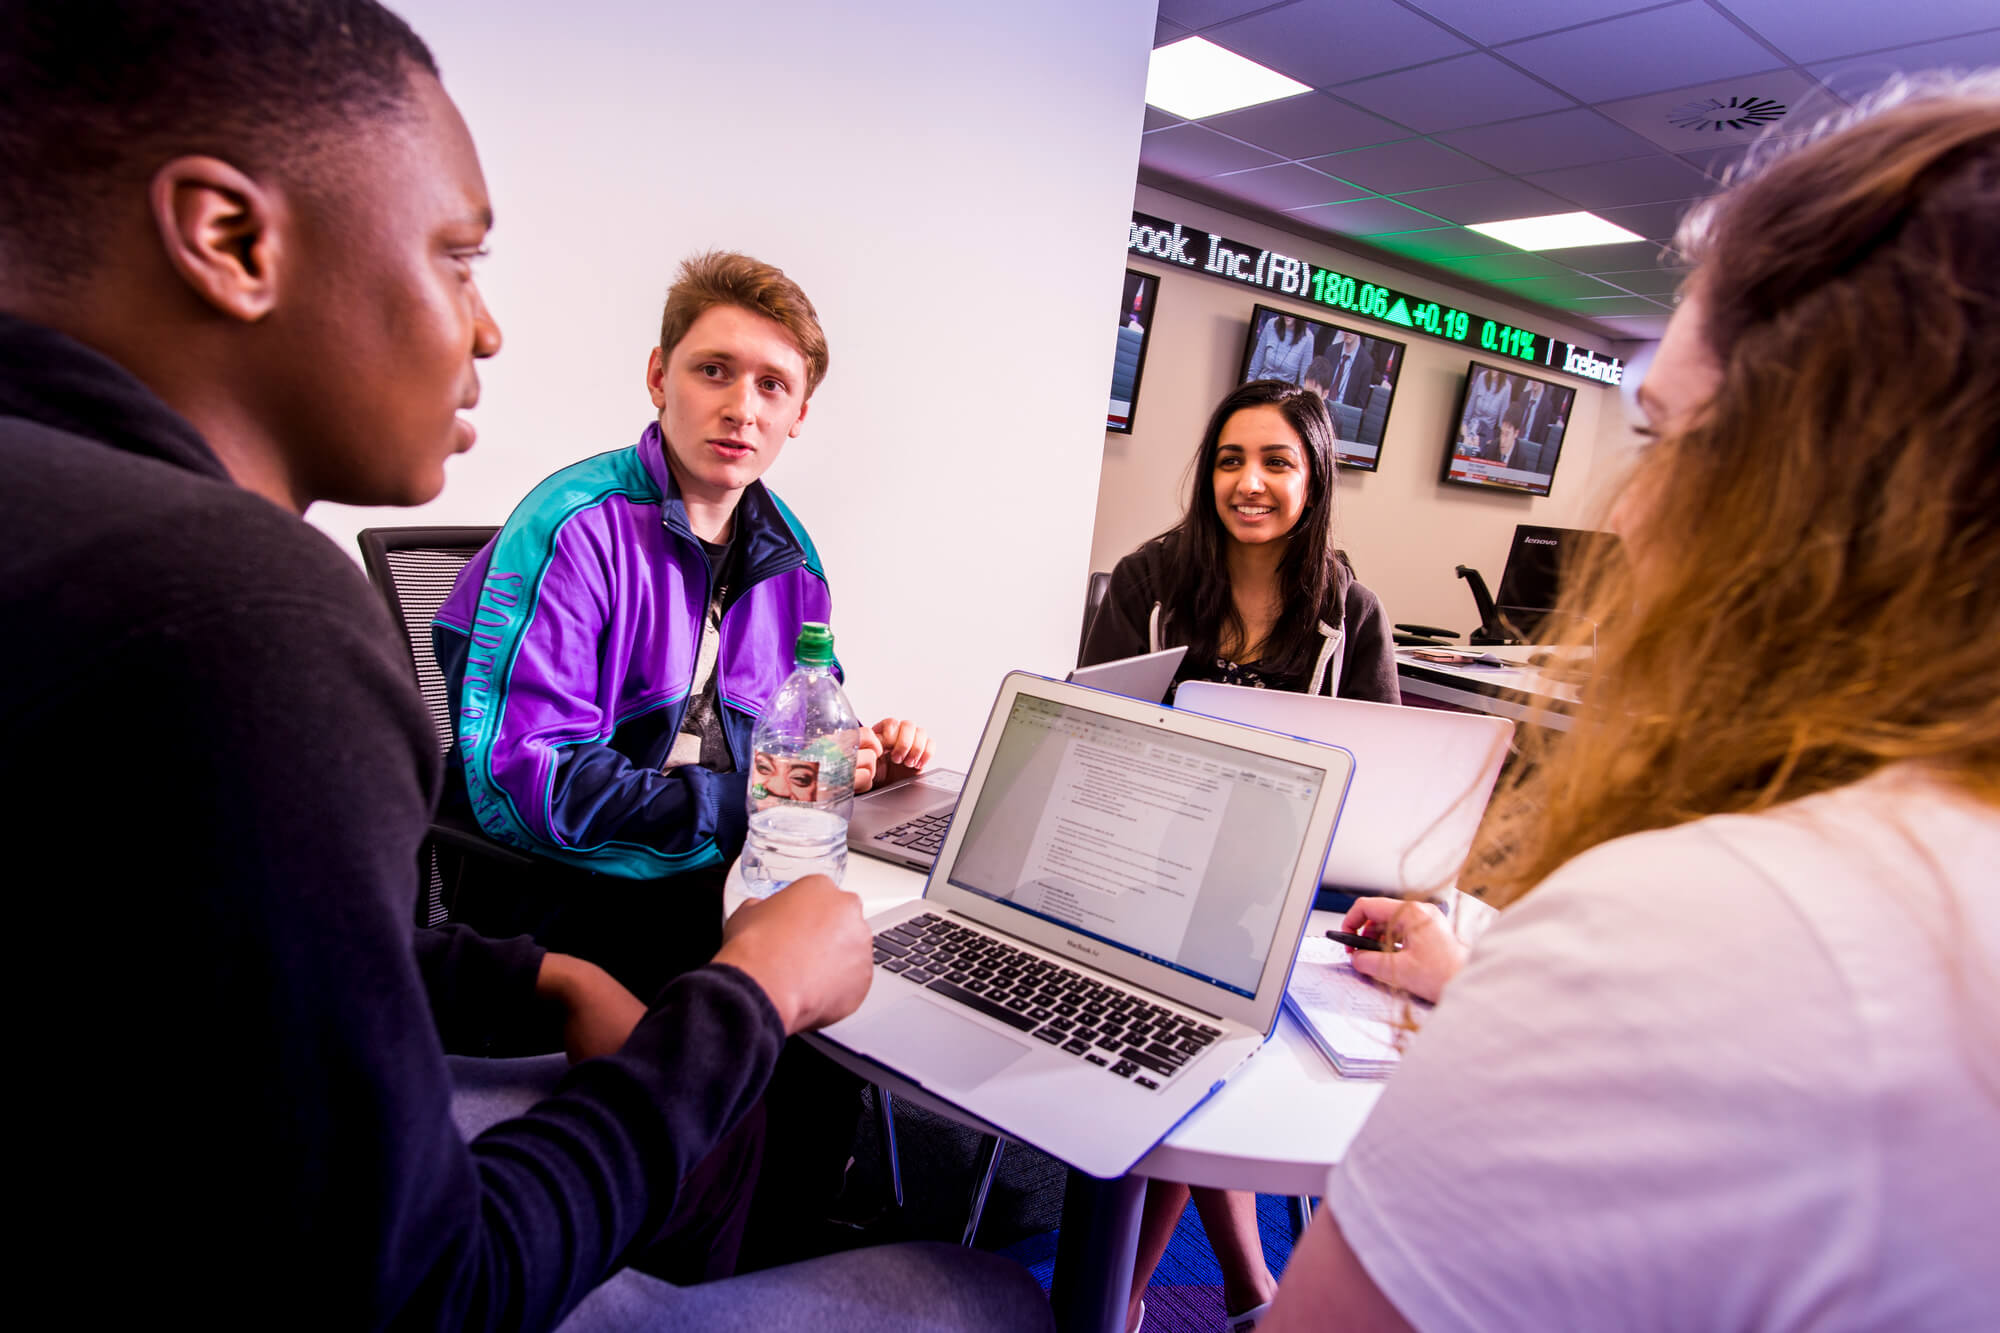 Students discussing their work in the Bloomberg facility